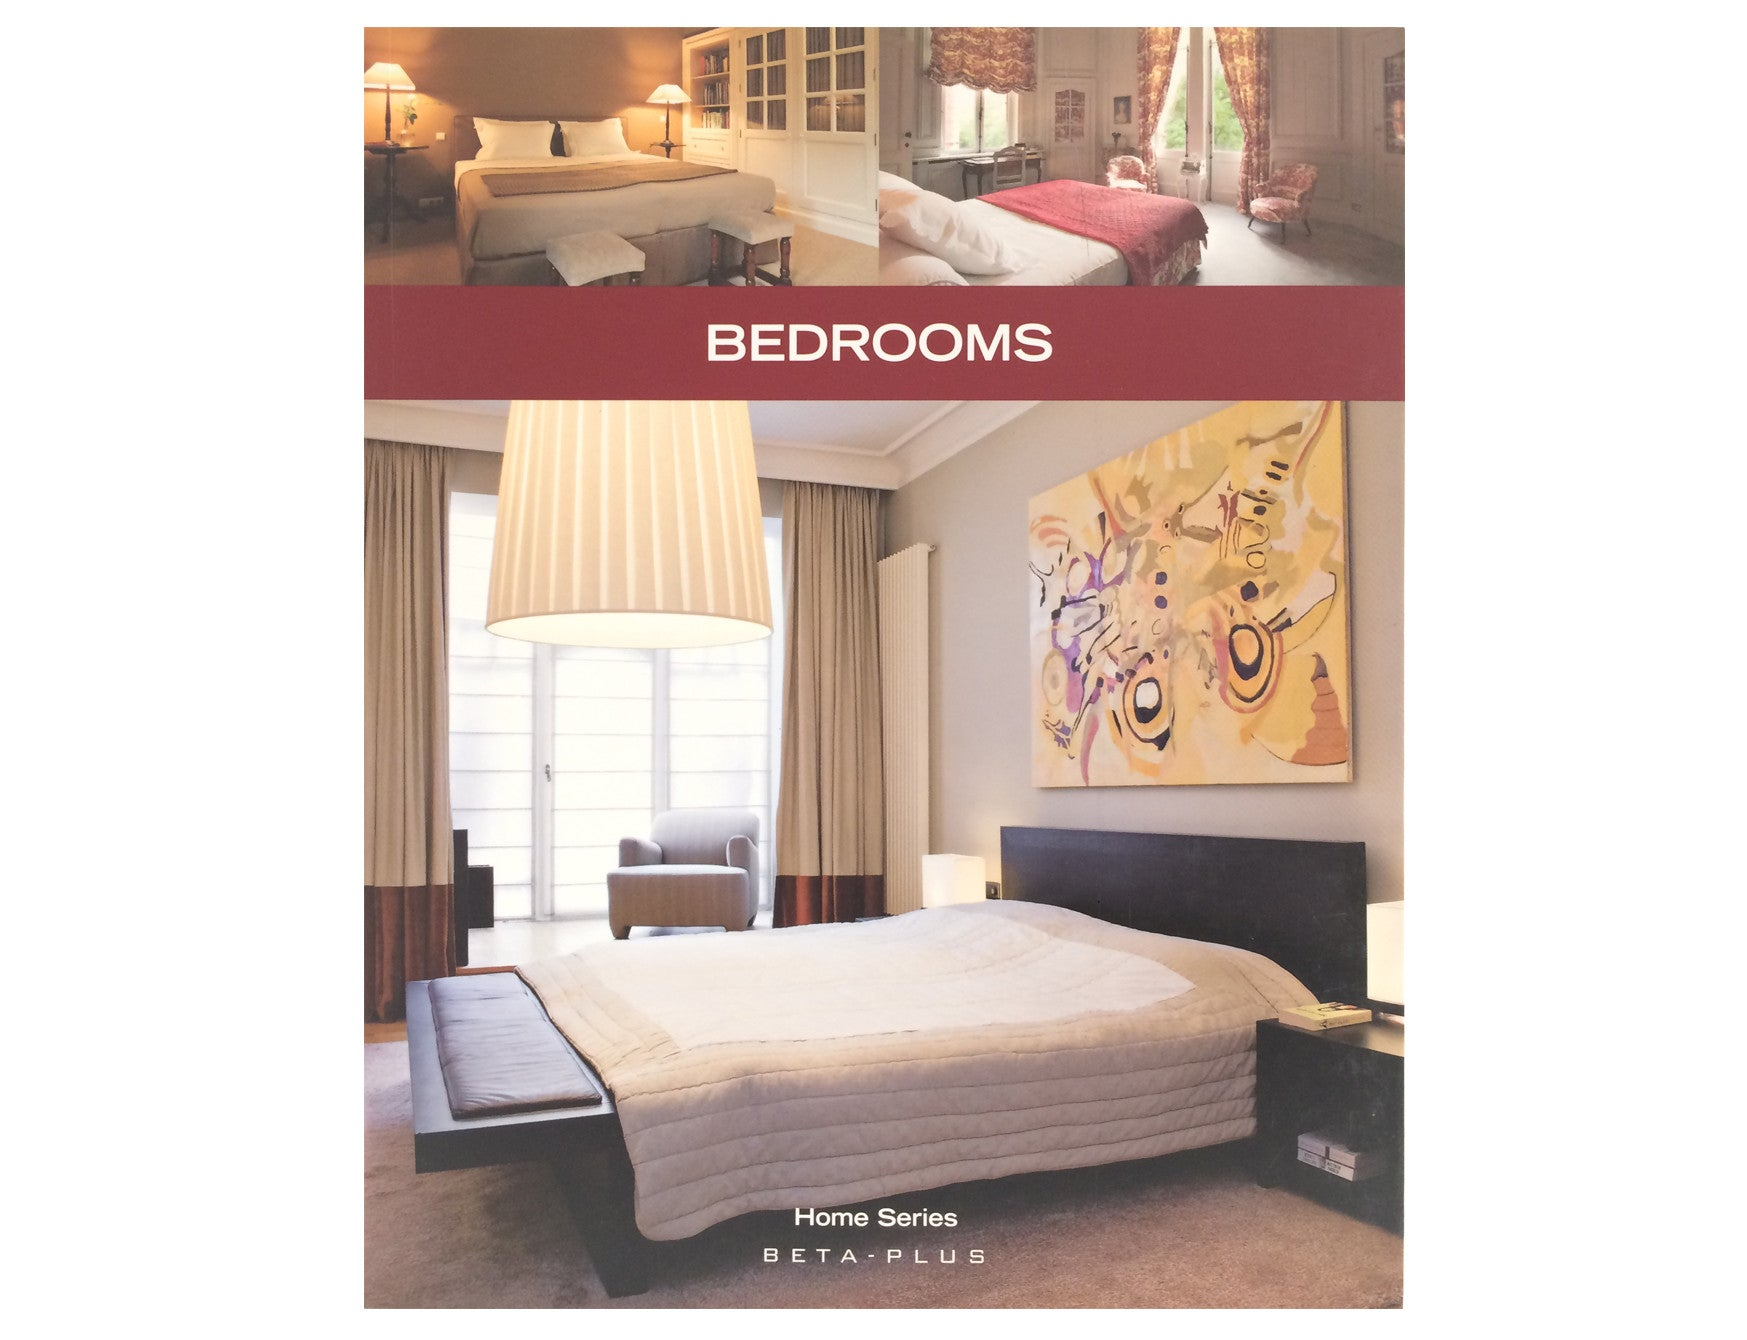 Bedrooms (Home Series)